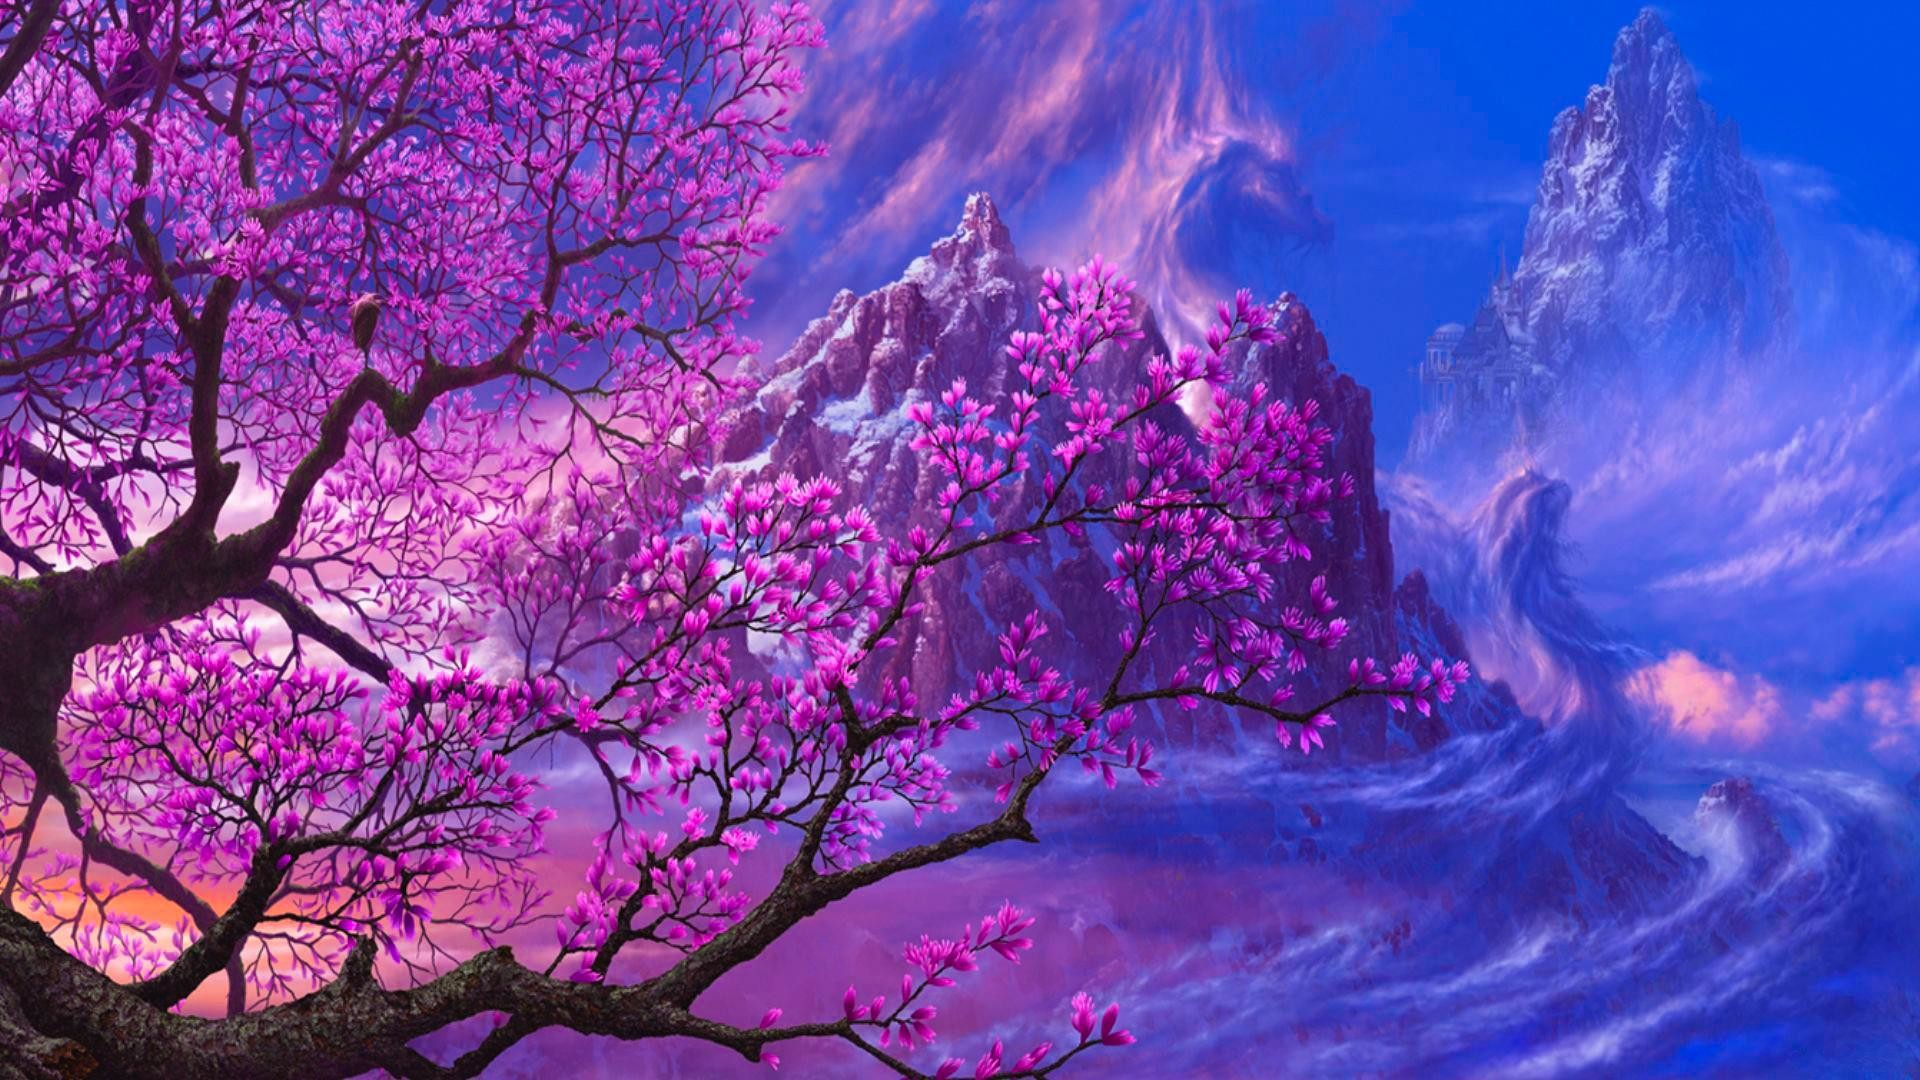 Cherry blossom tree wallpaper 60 images - Anime cherry blossom wallpaper ...